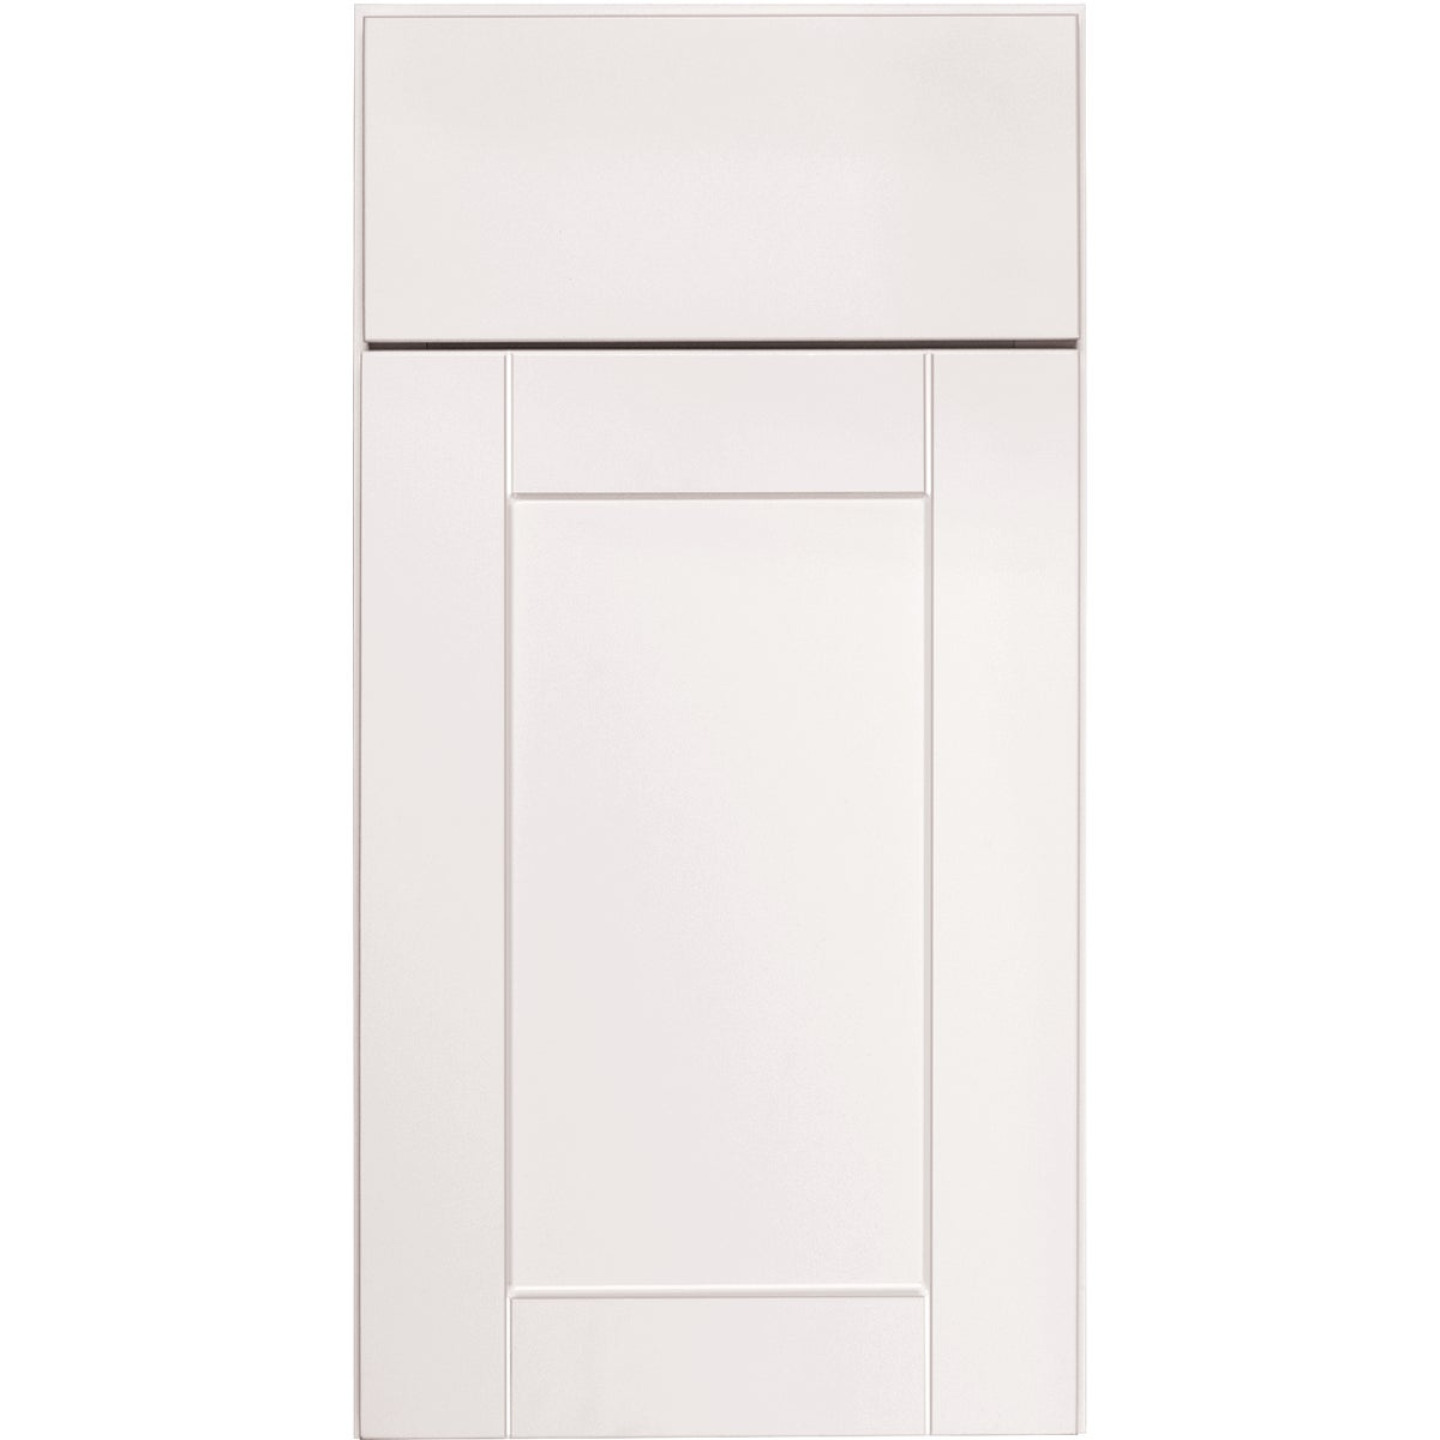 Continental Cabinets Andover Shaker 36 In. W x 34 In. H x 24 In. D White Thermofoil Base Kitchen Cabinet Image 3